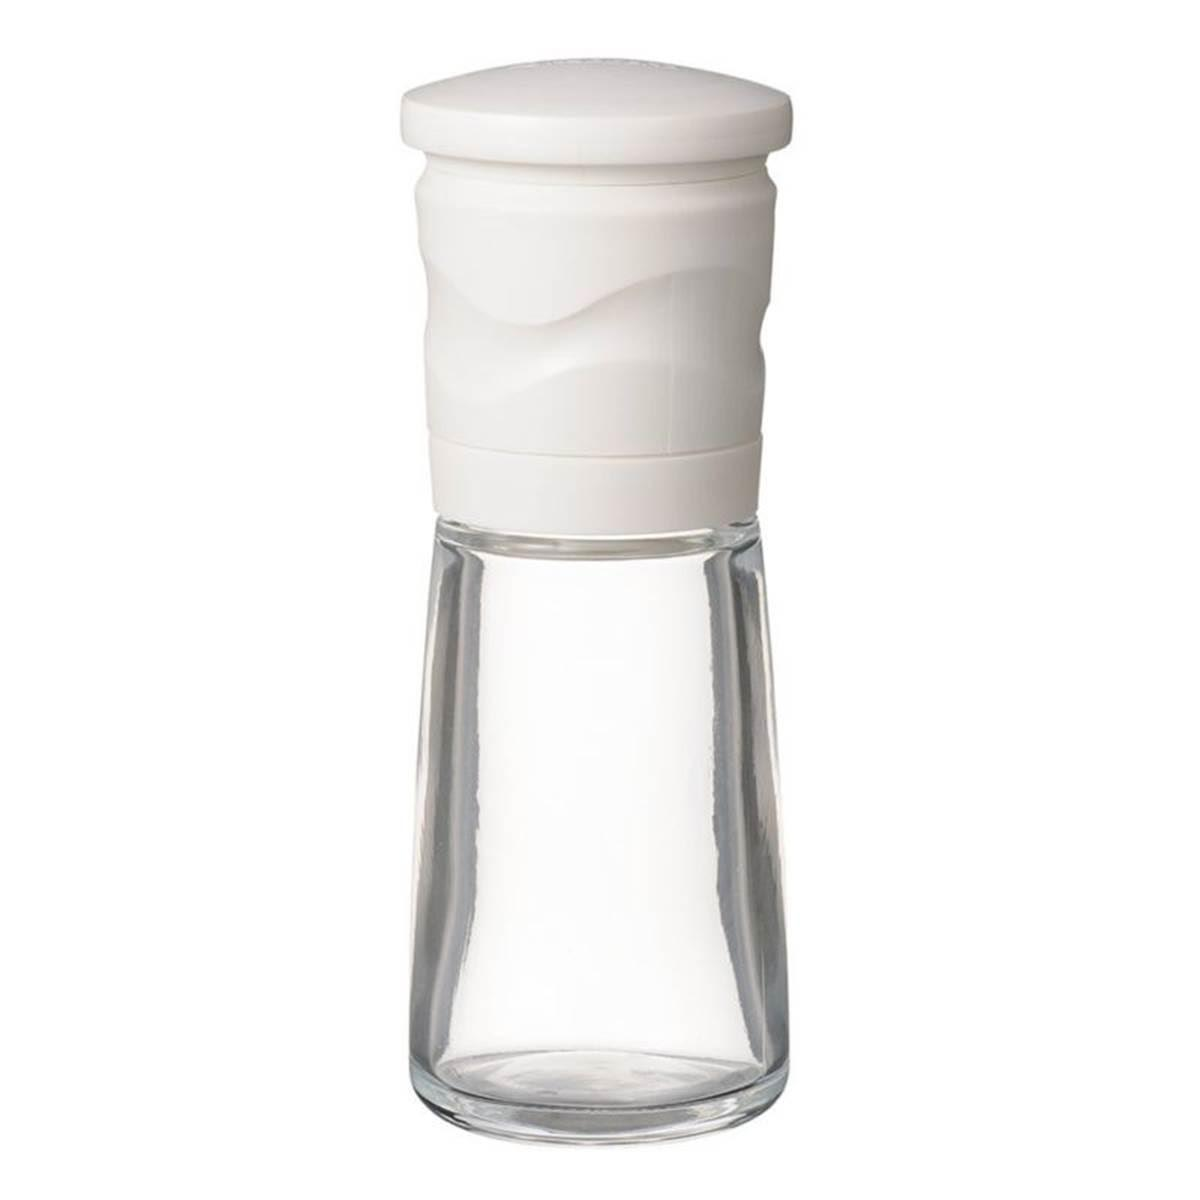 Salt glass grinder